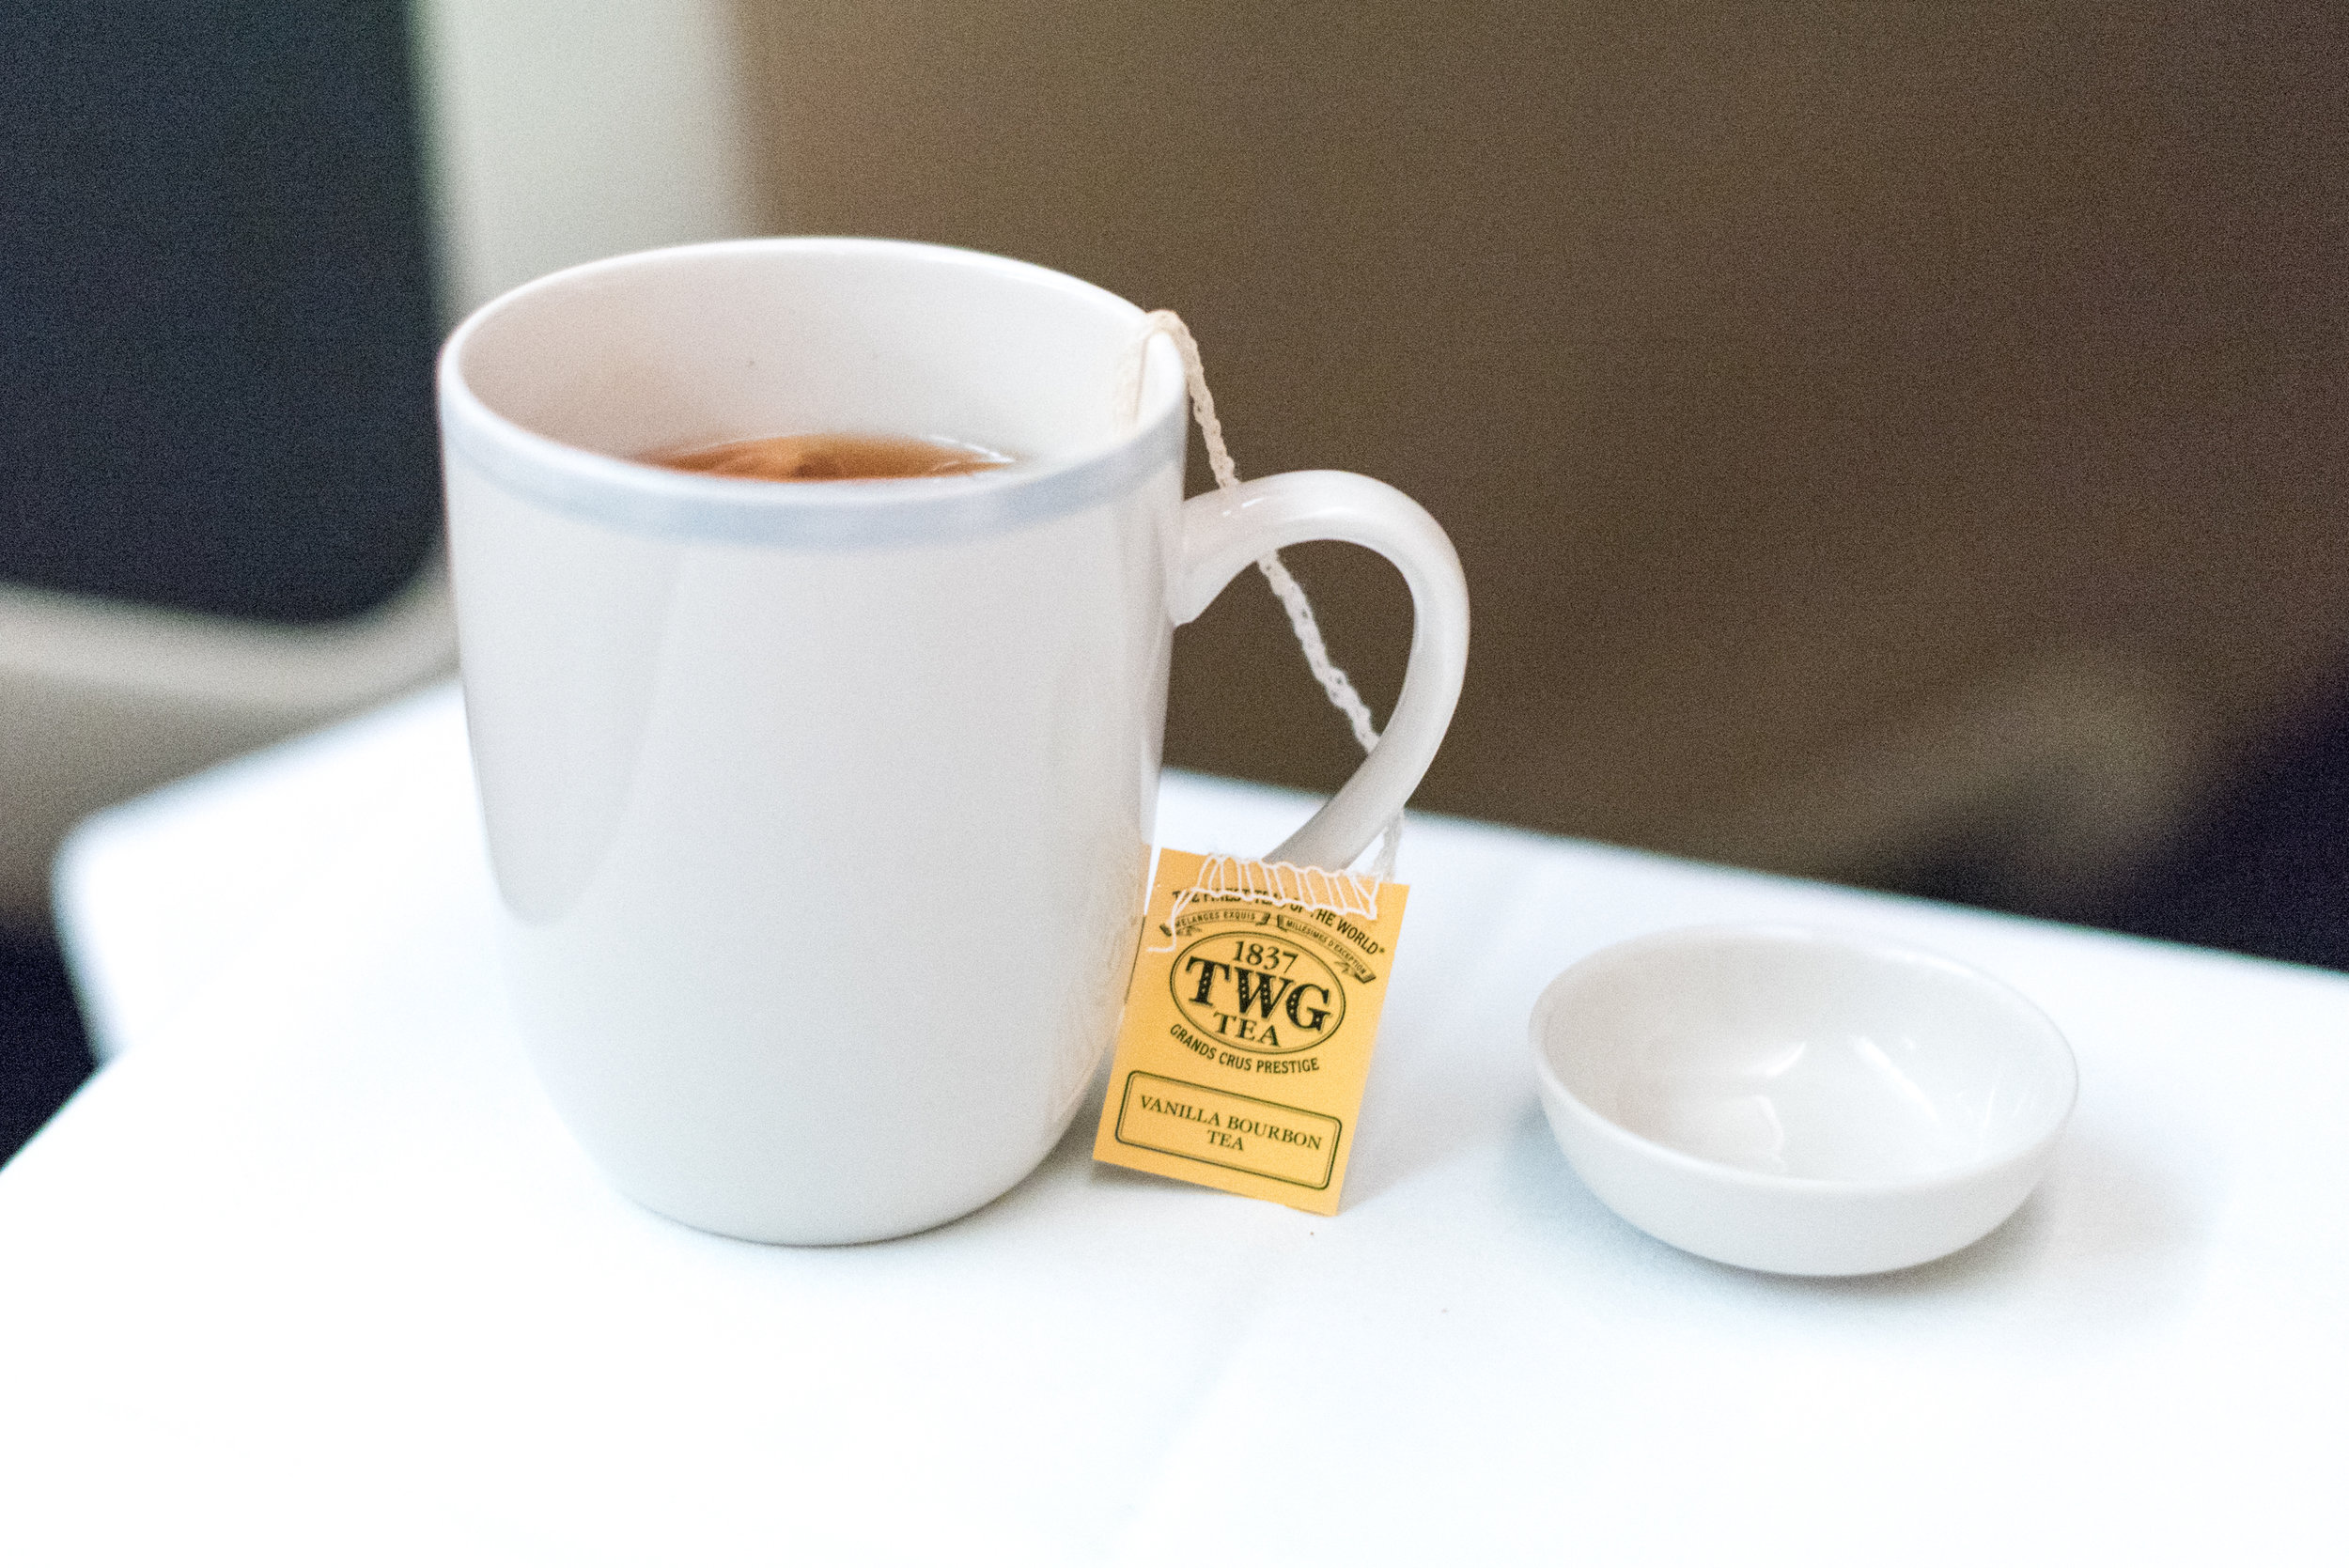 Vanilla Bourbon Tea from TWG - Dinner Service  Singapore Airlines Business Class SQ285 A380-800 - SIN to AKL